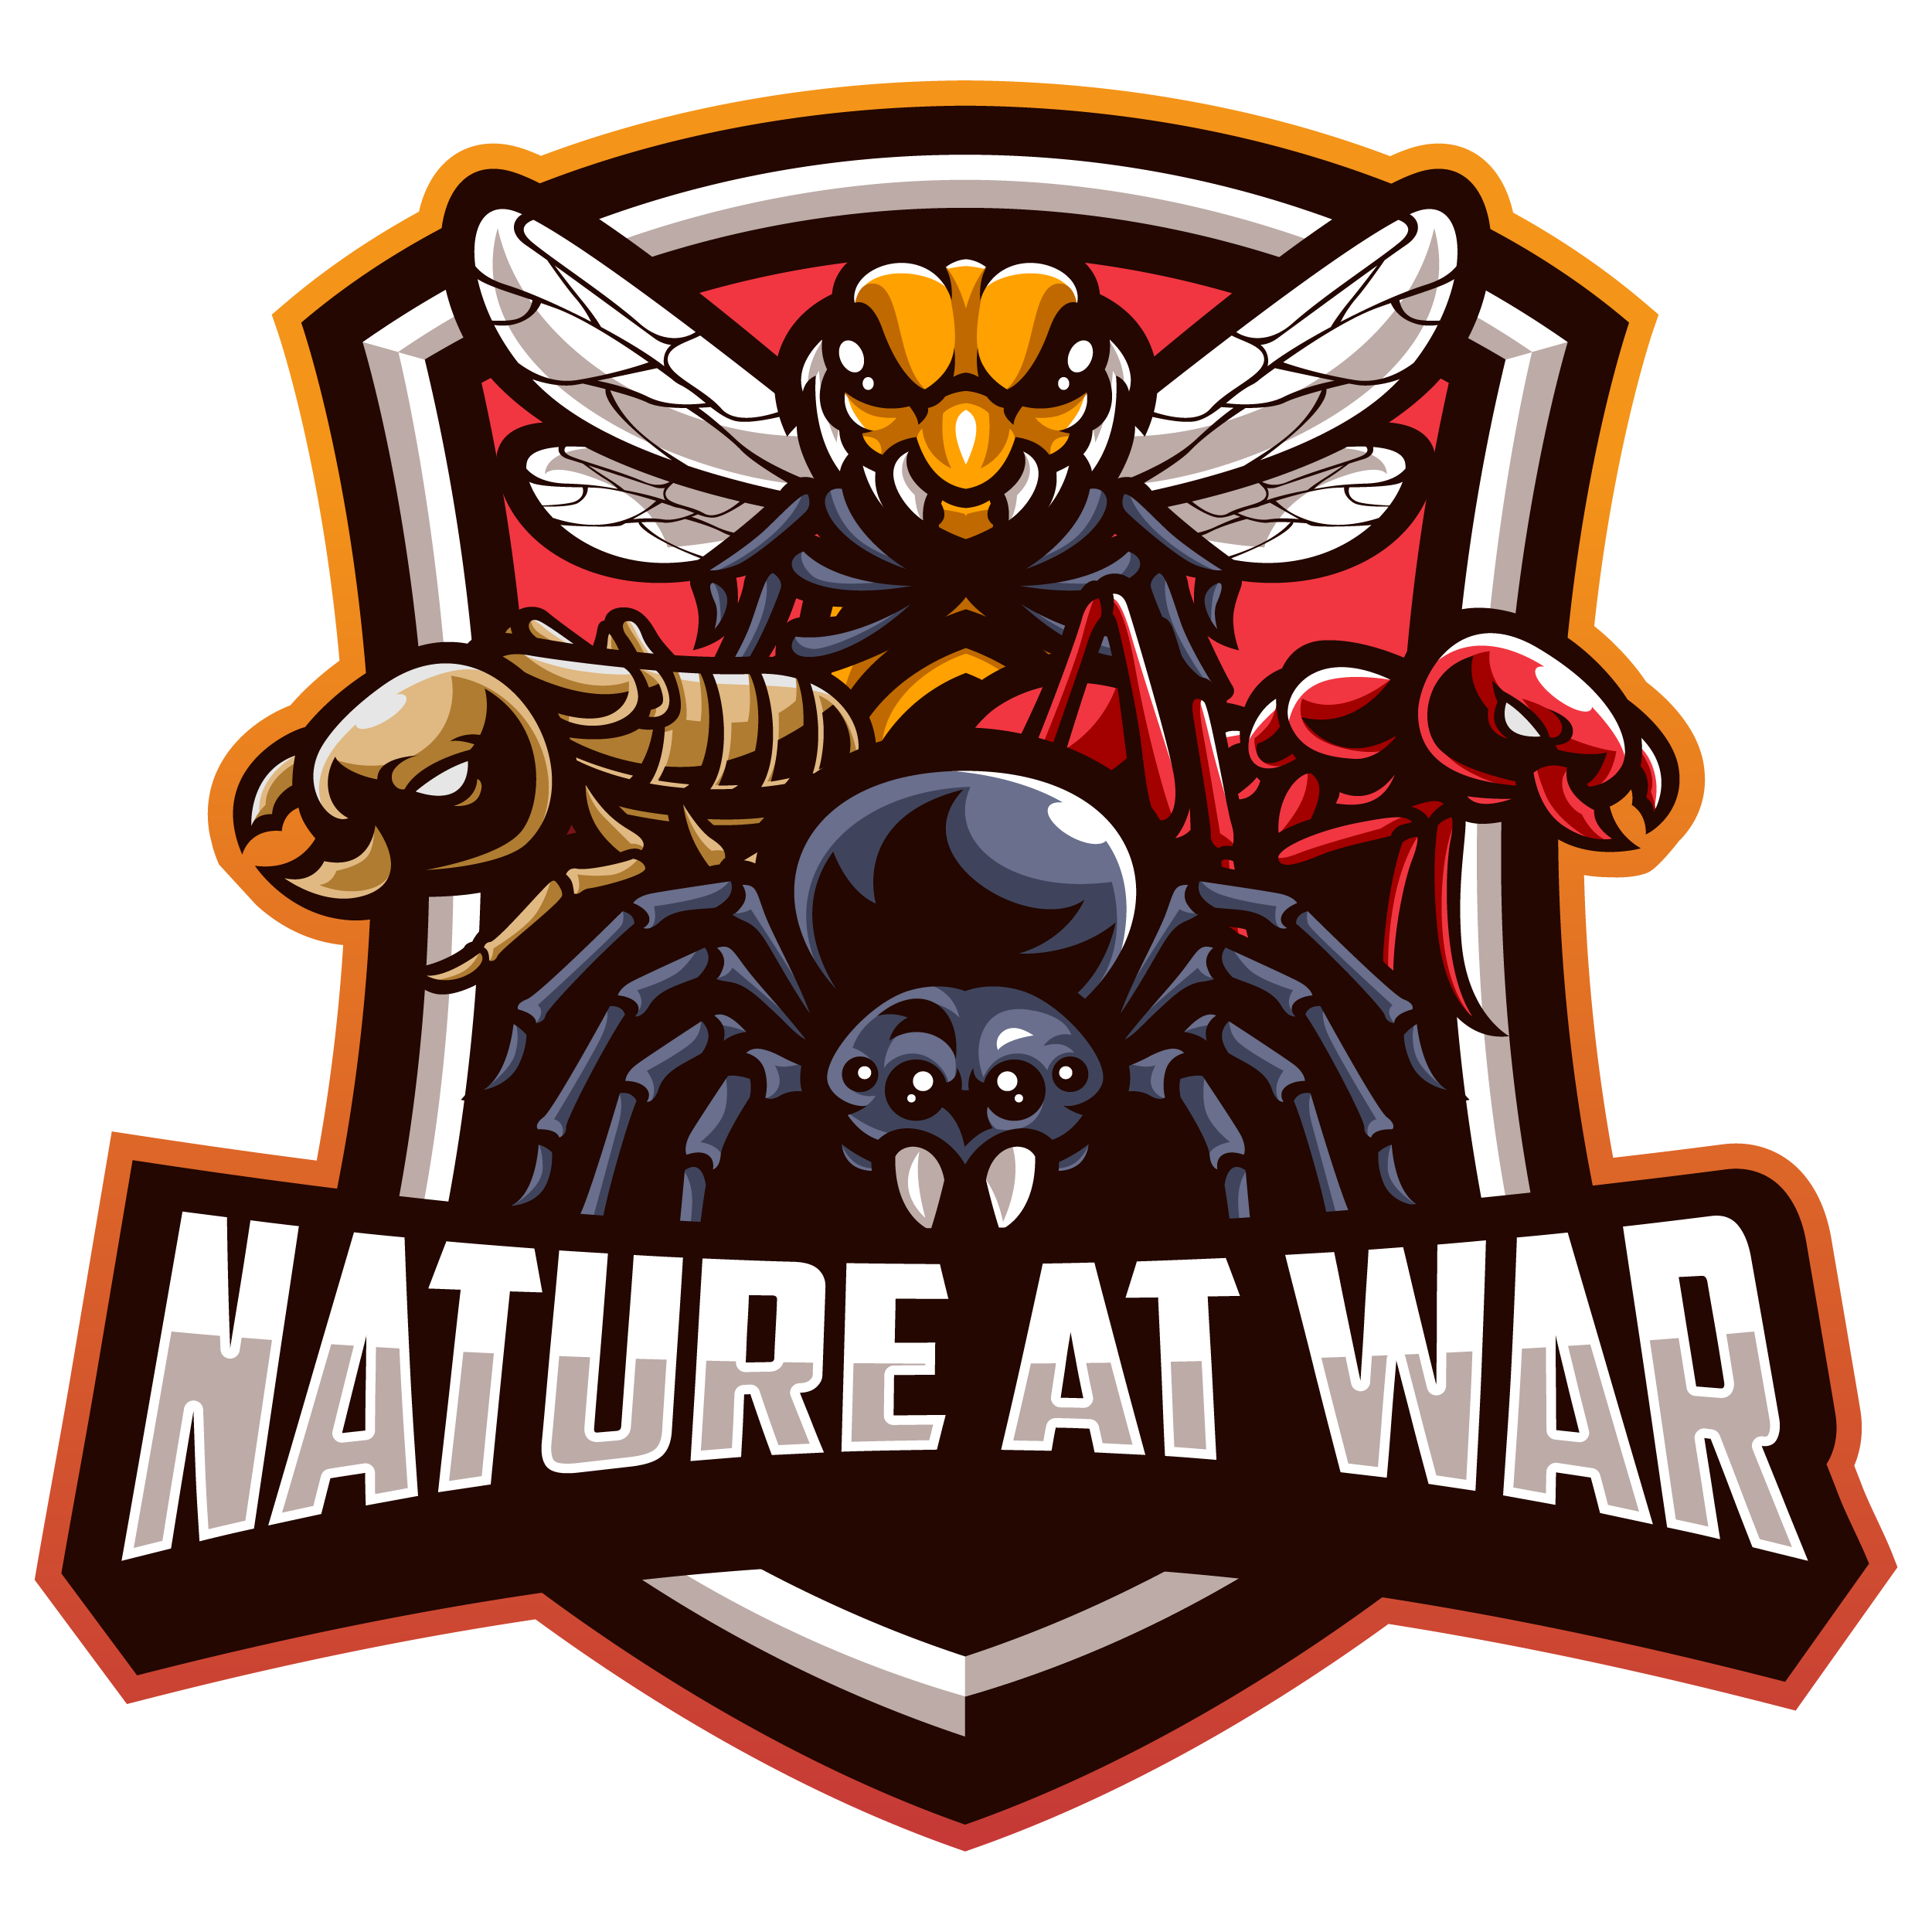 Nature at War Logo